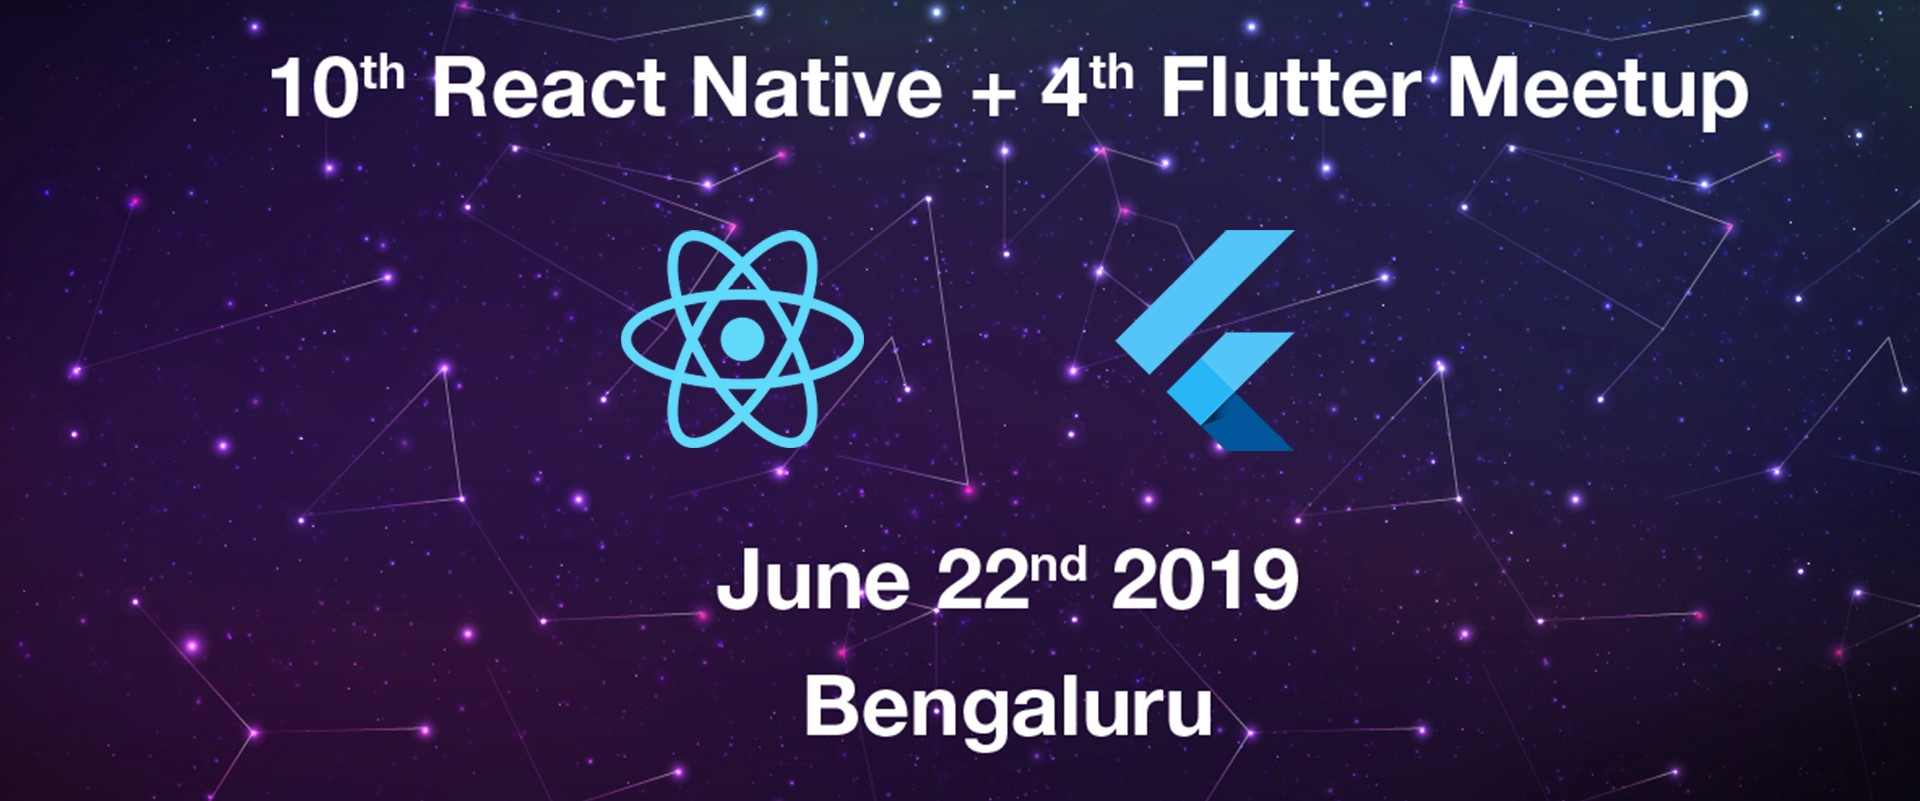 The 10th React Native & 4th Flutter Meet-up, Bangalore 2019